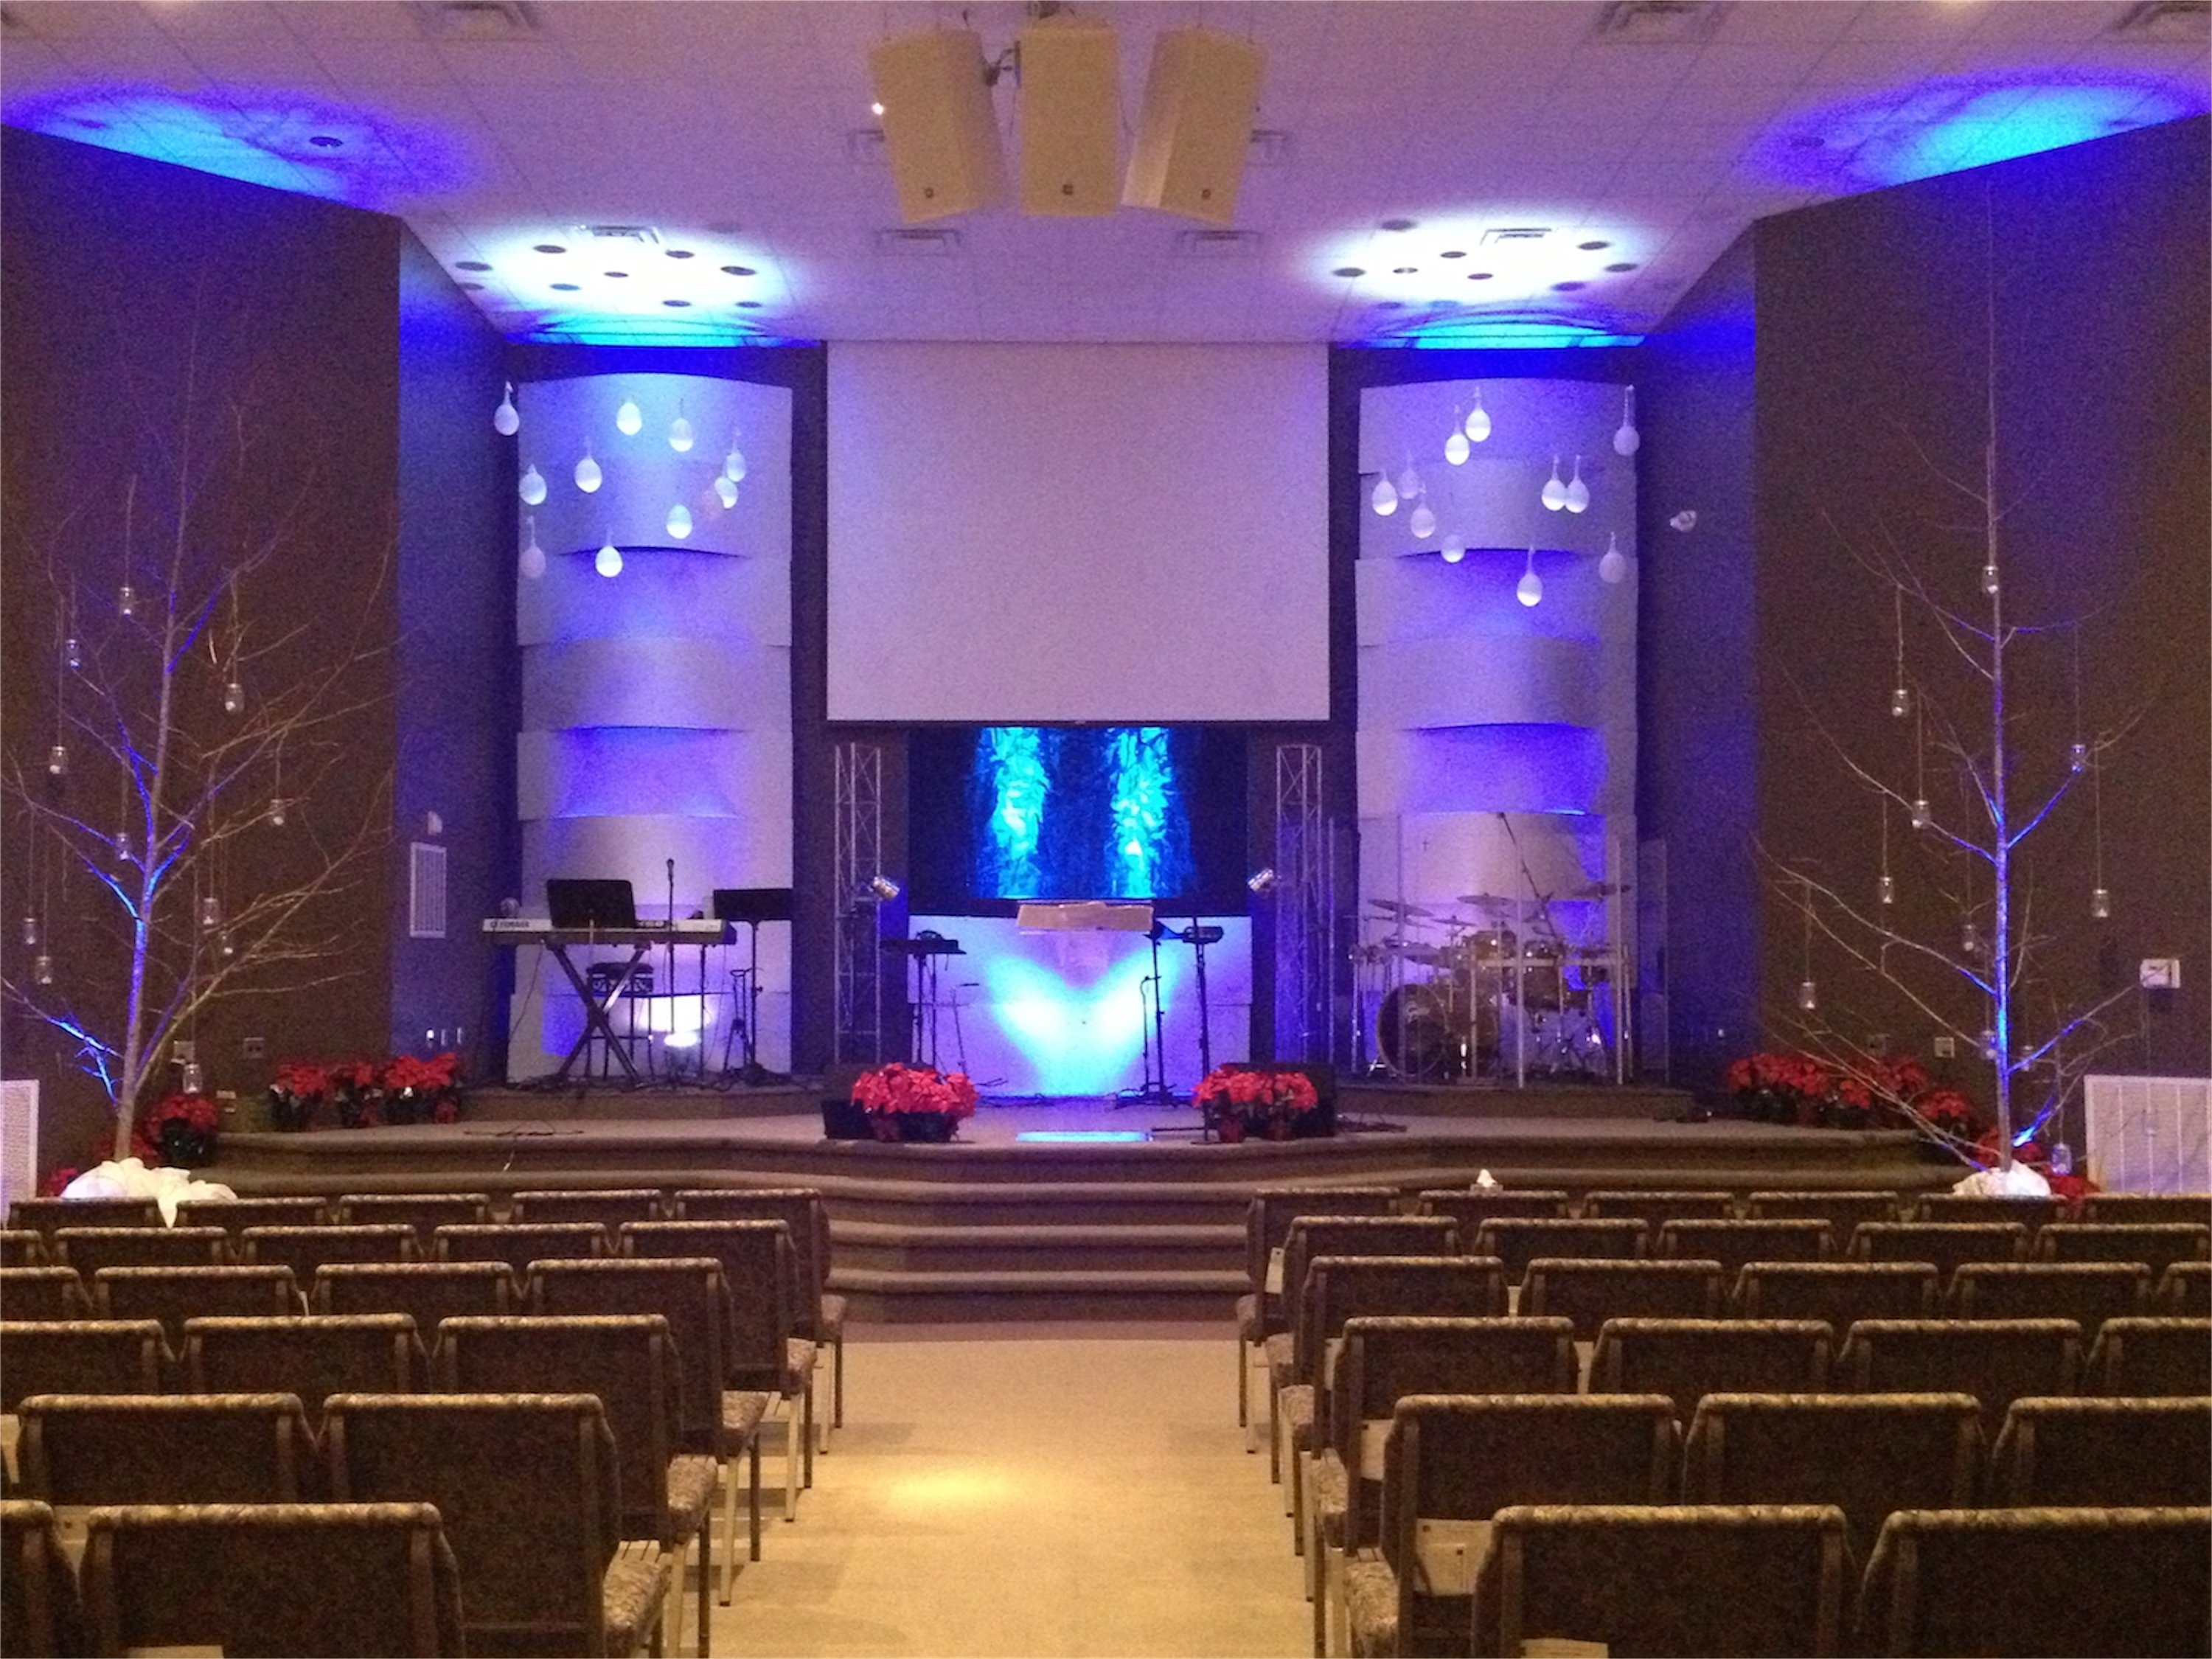 10 Unique Small Church Stage Design Ideas small church stage design church pinterest church stage 2020